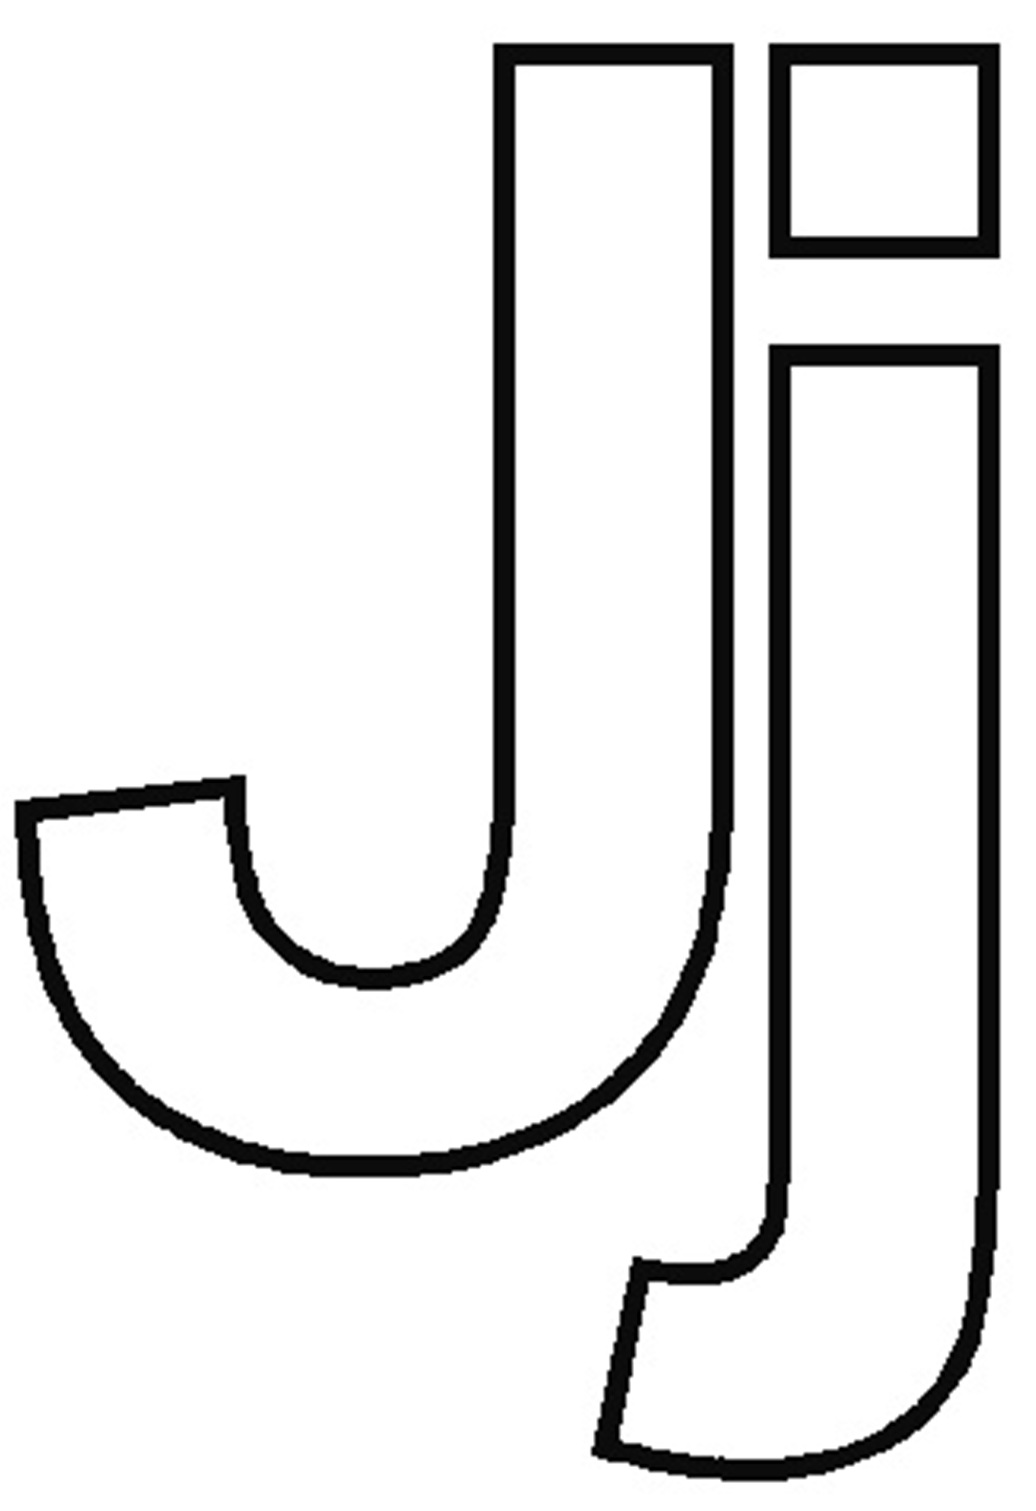 Free Letter J Download Free Clip Art Free Clip Art On Clipart Library